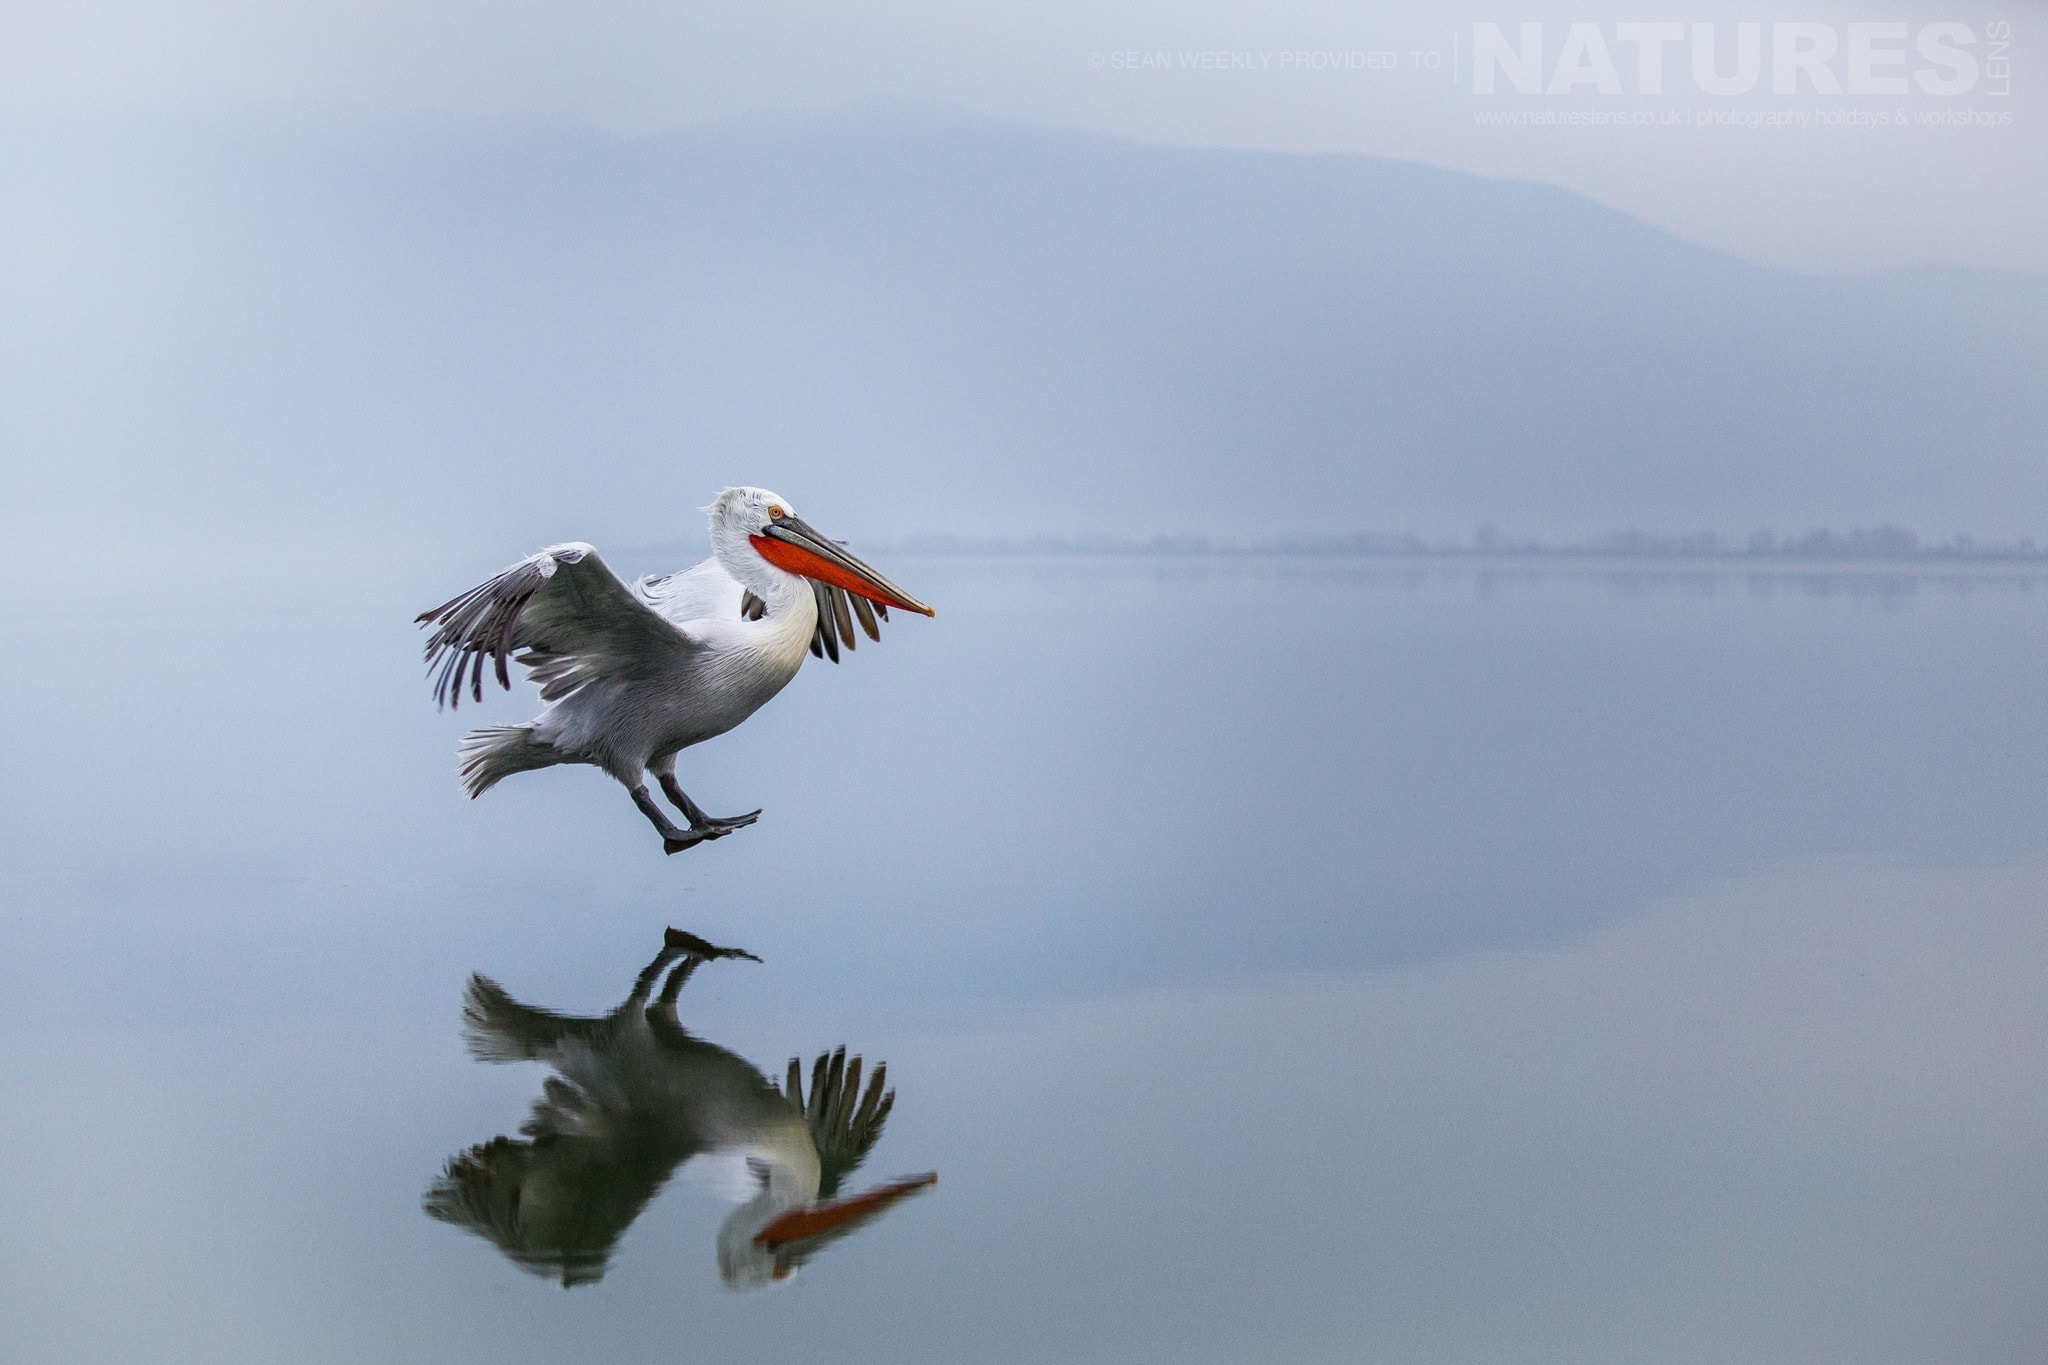 One Of The Pelicans Comes Into Land On Lake Kerkini   Photographed During The NaturesLens Dalmatian Pelicans Of Greece Photography Holiday